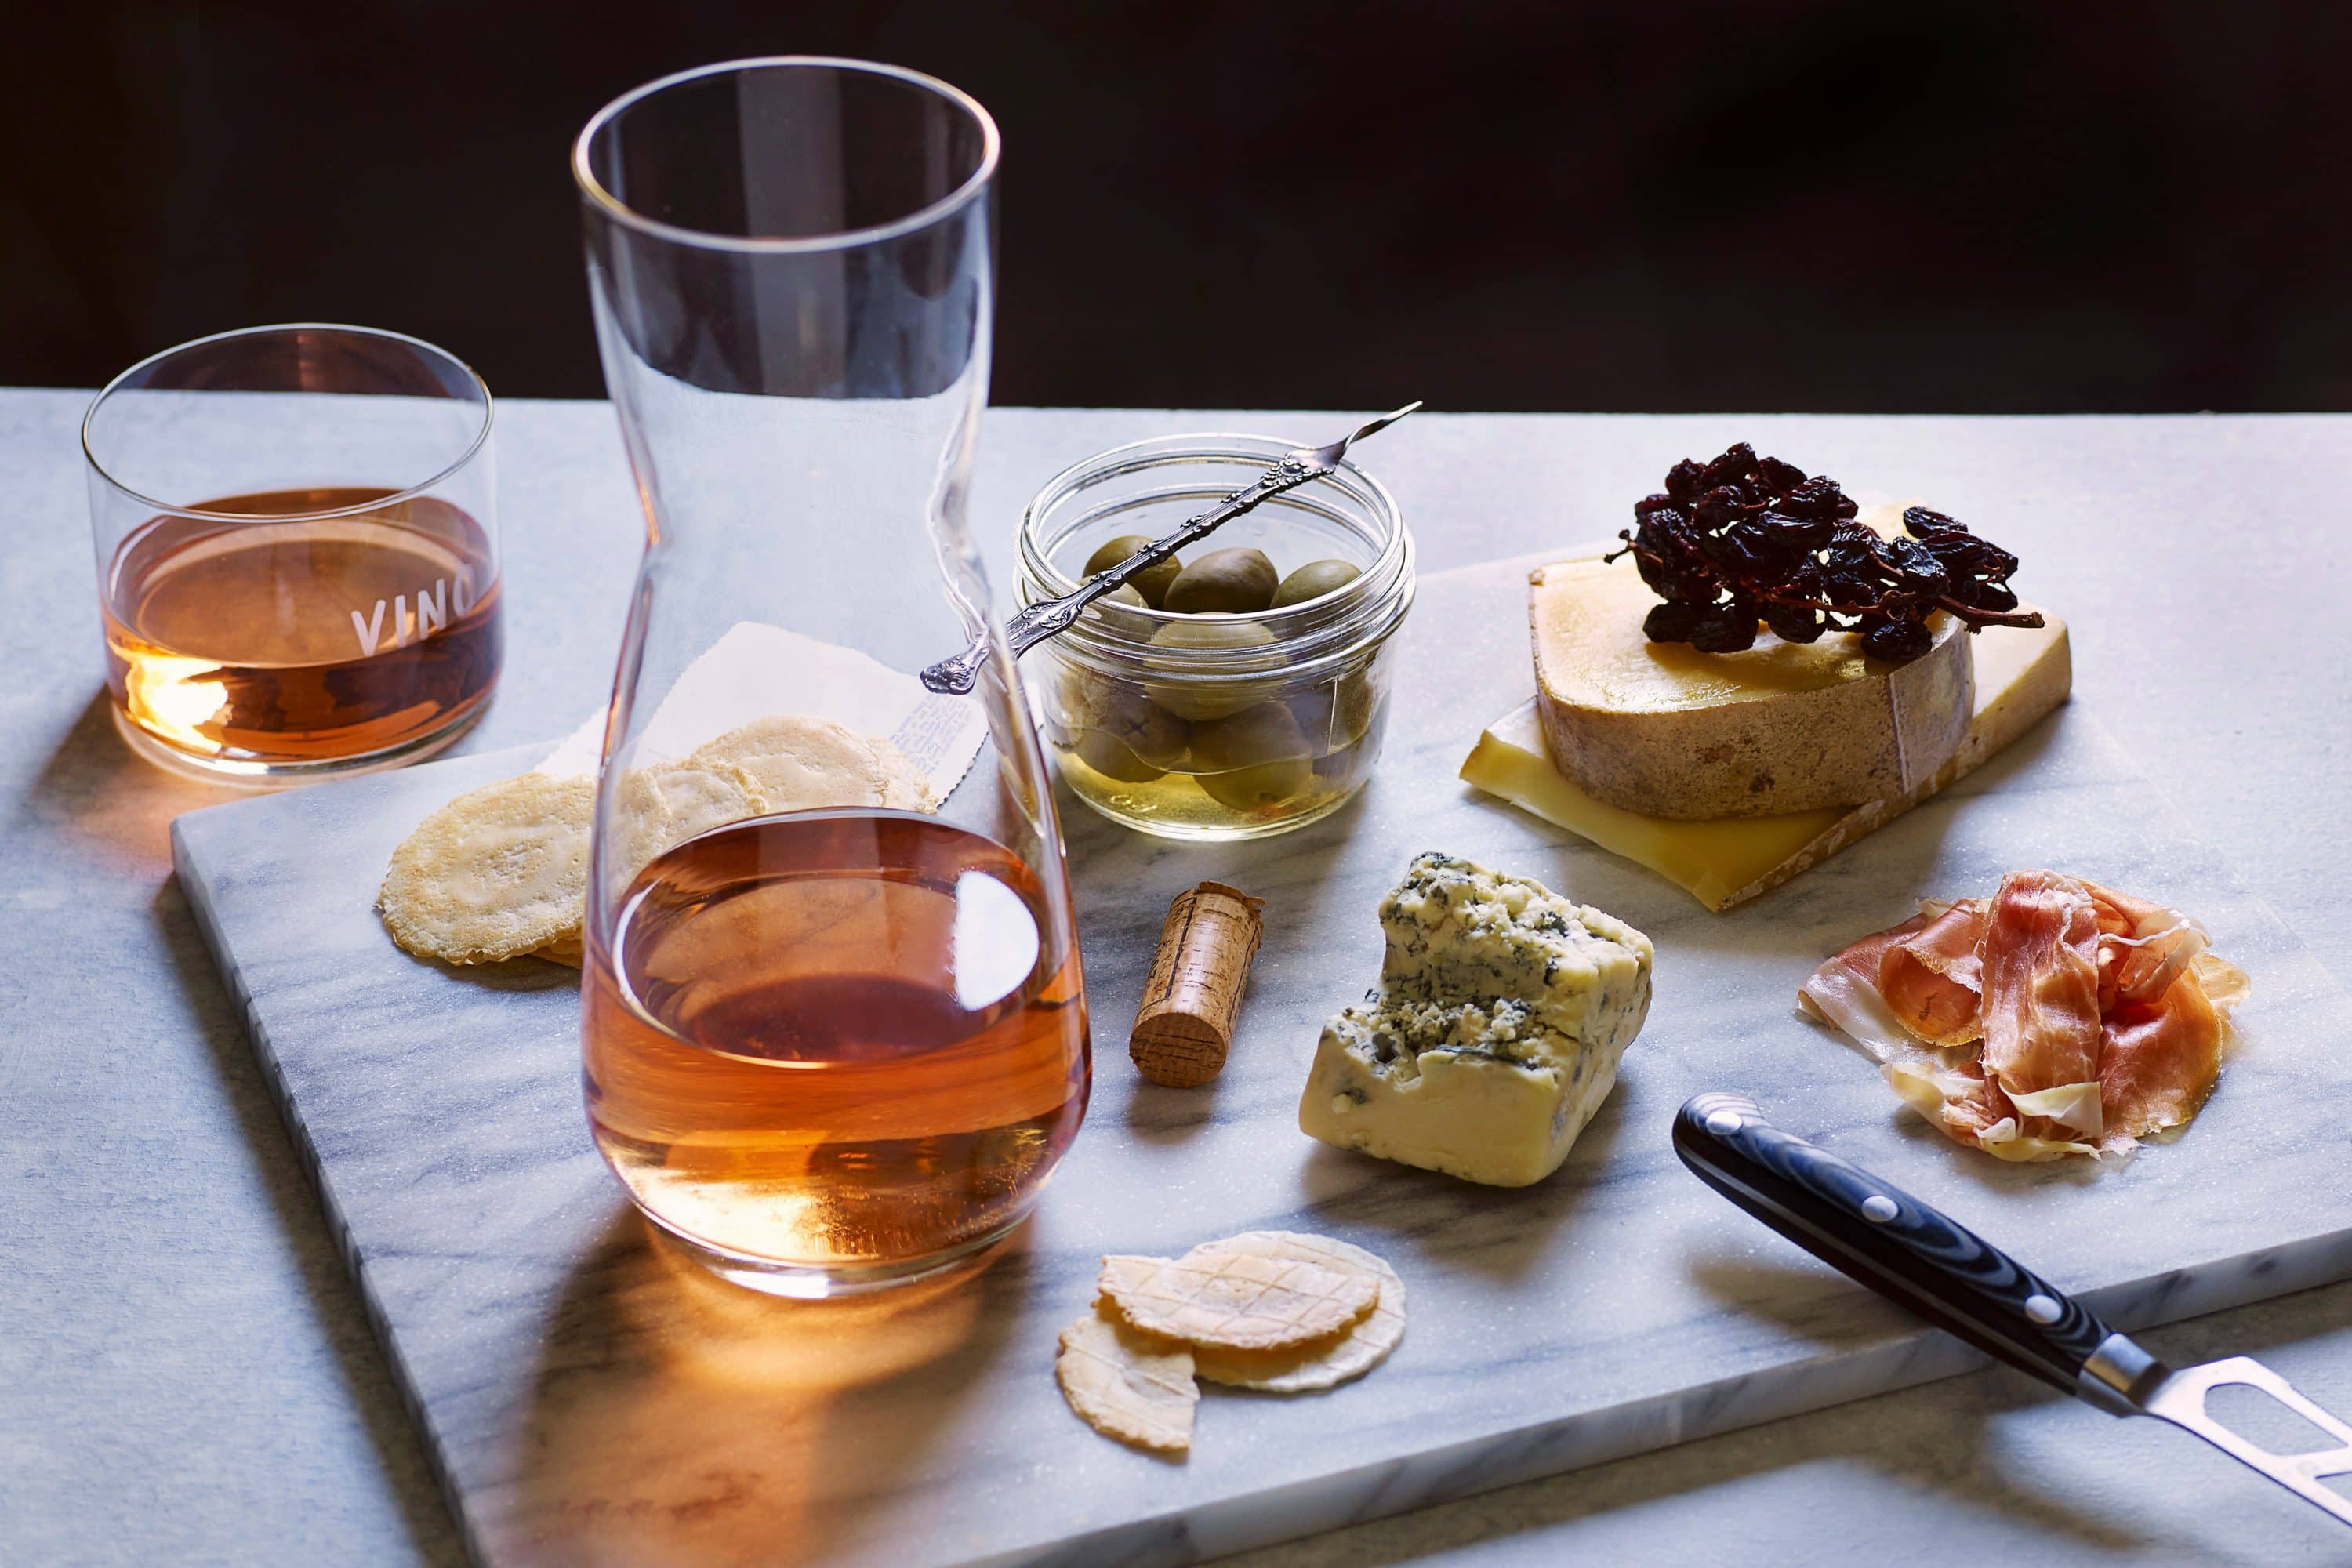 Cheese board with a decanter of rose wine